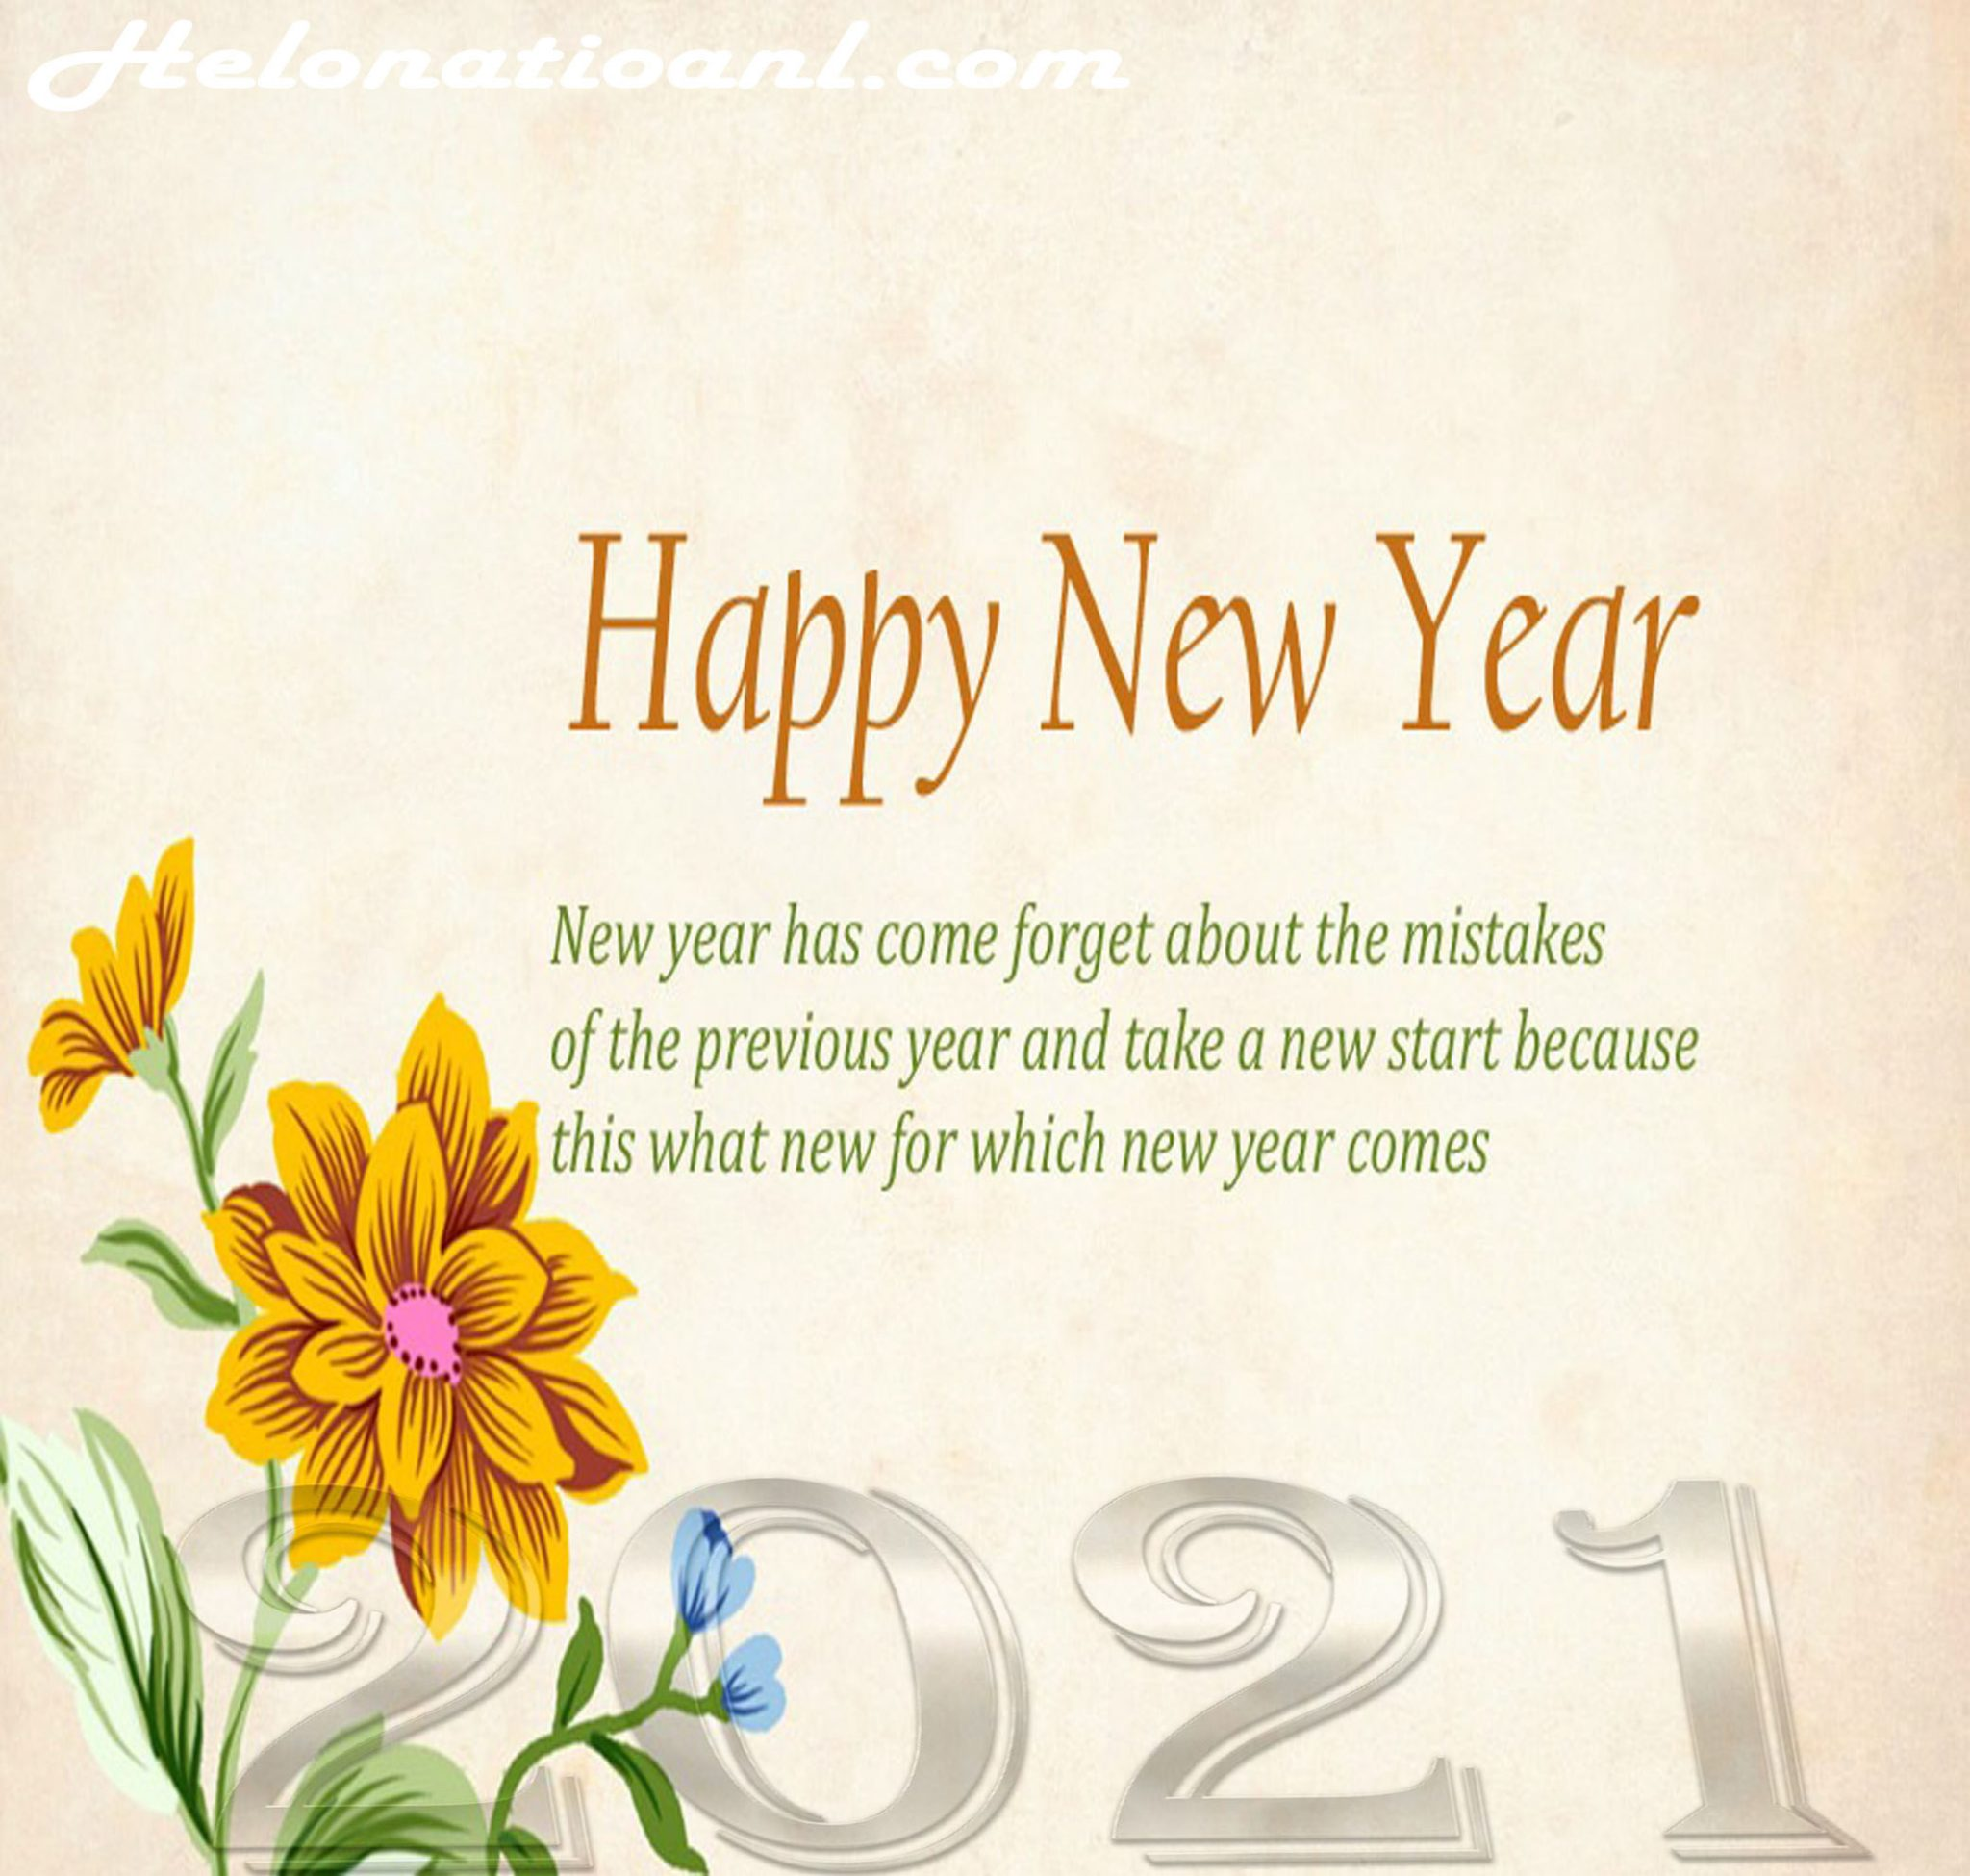 Amazing whatsapp new year 2021 messages